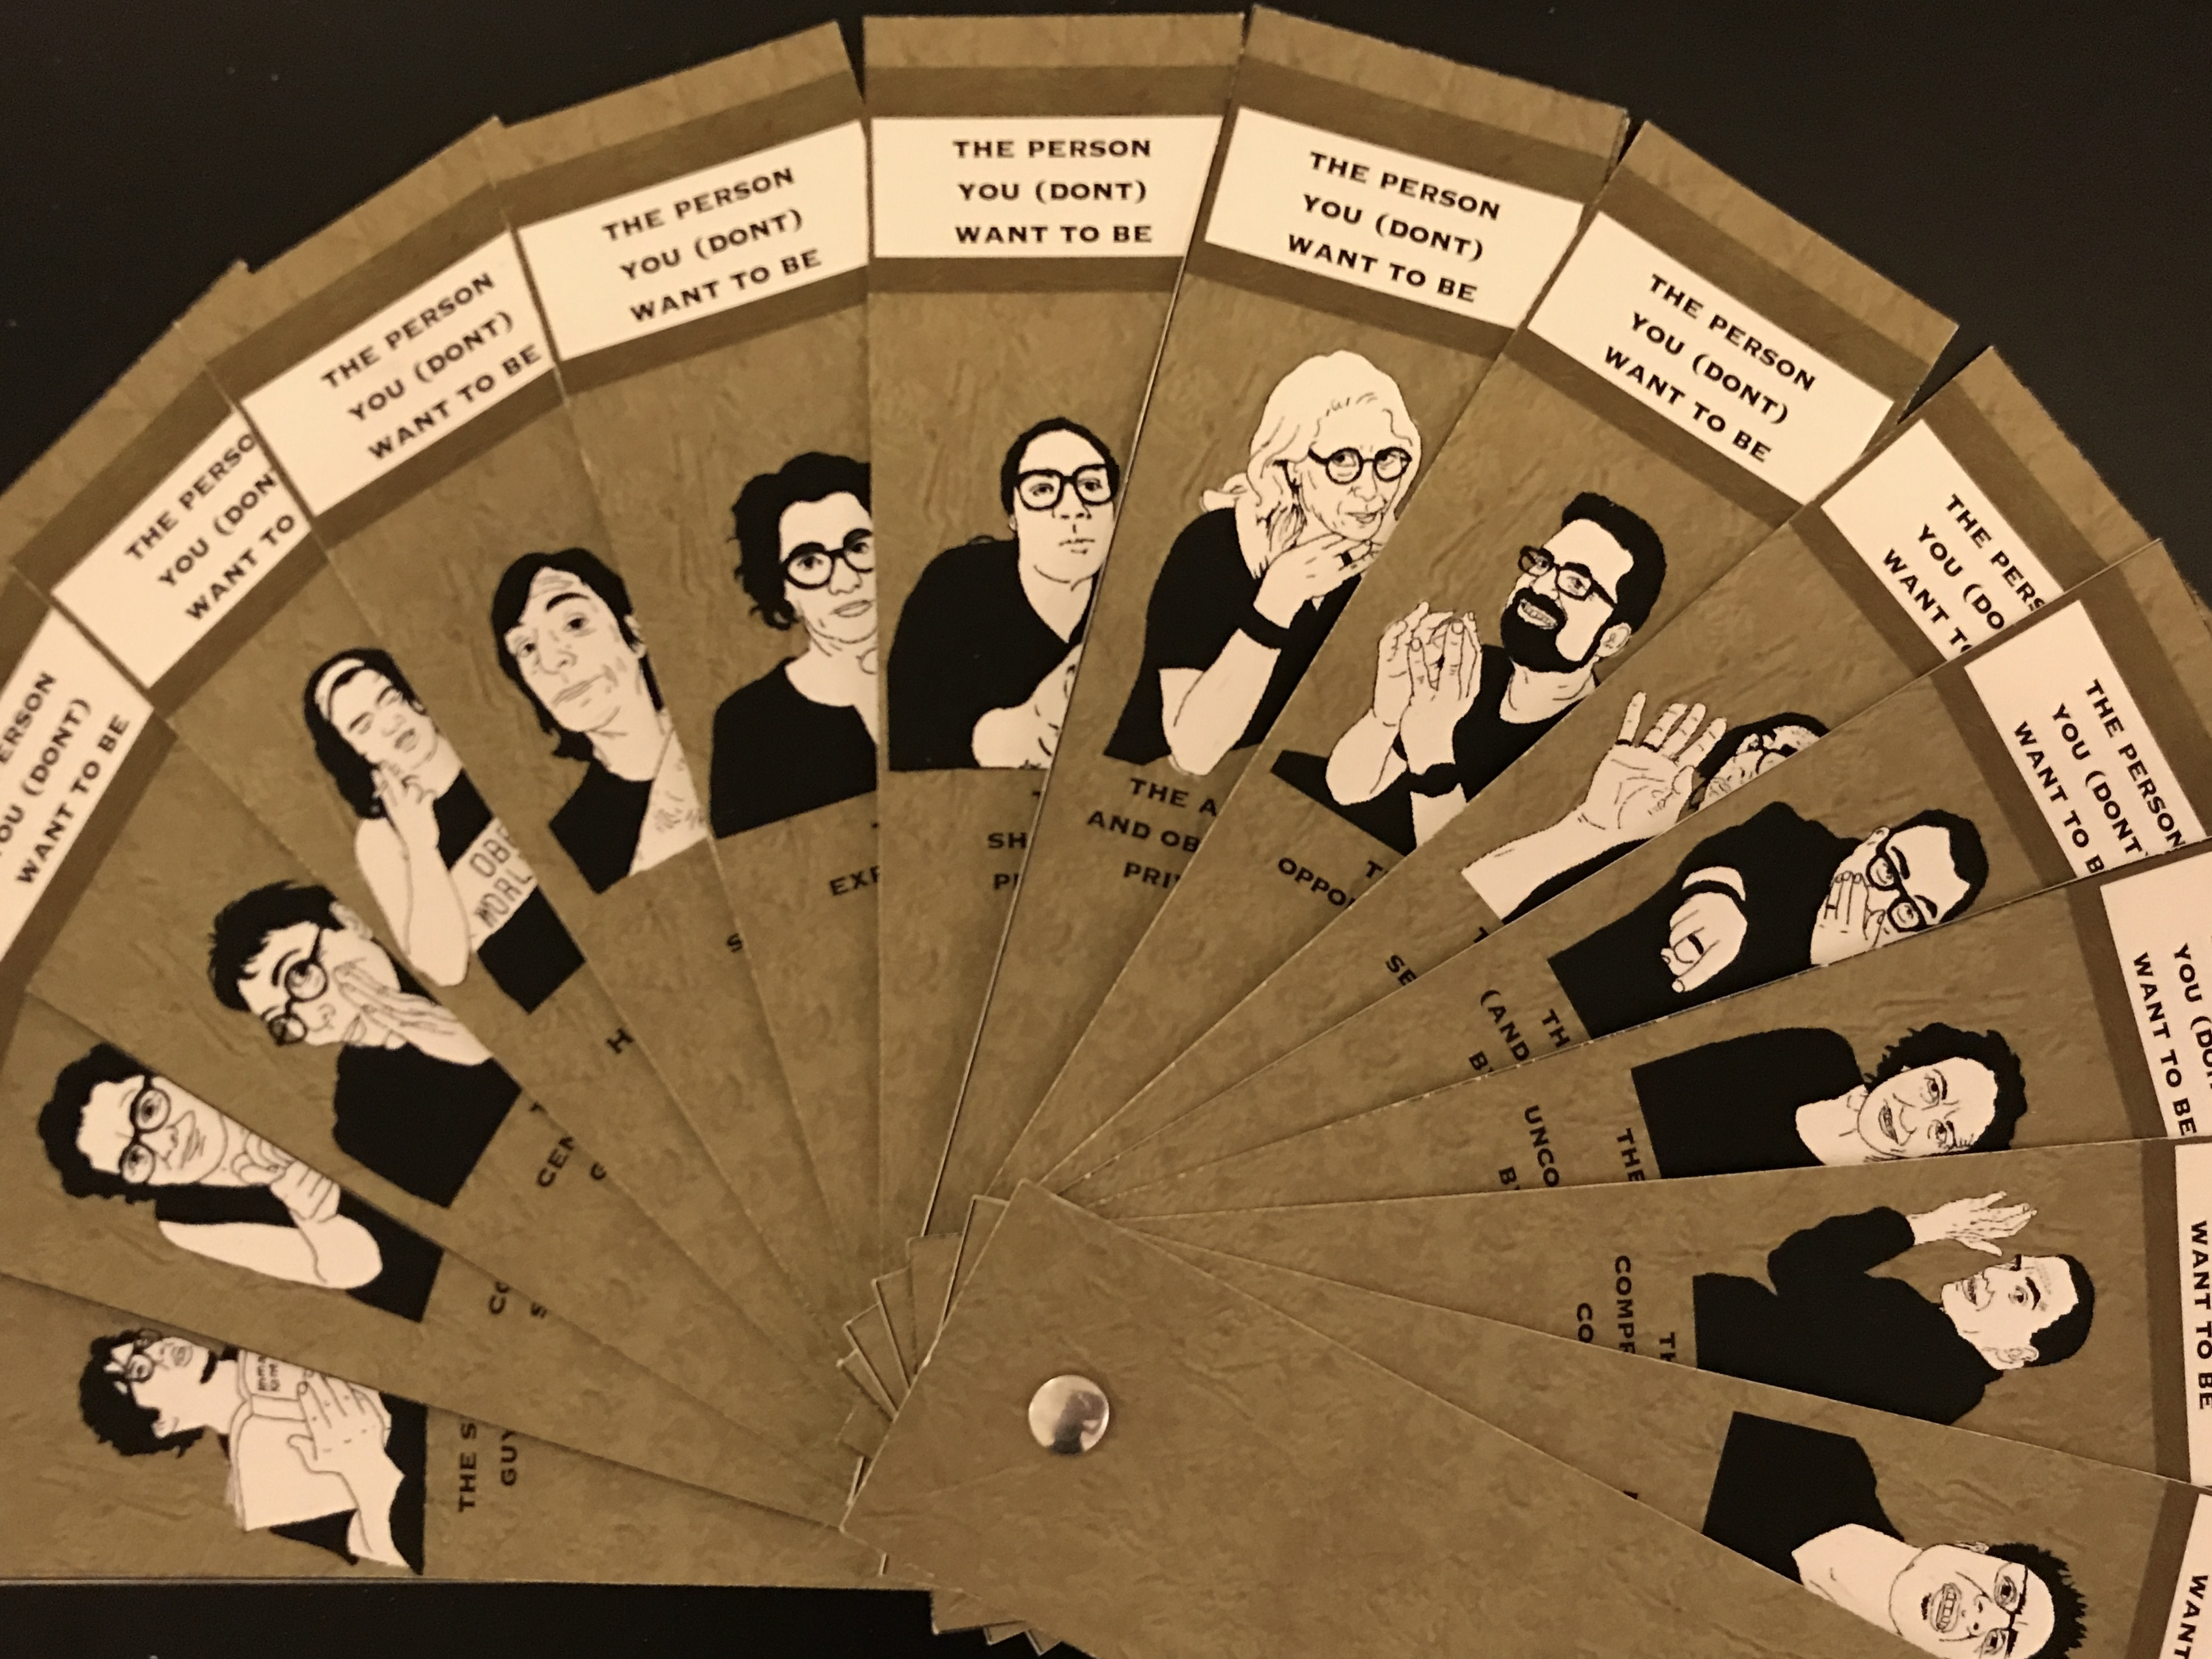 The Person You Don't Want to Be Swatchbook - fanned open with illustrations and names of each characteristic